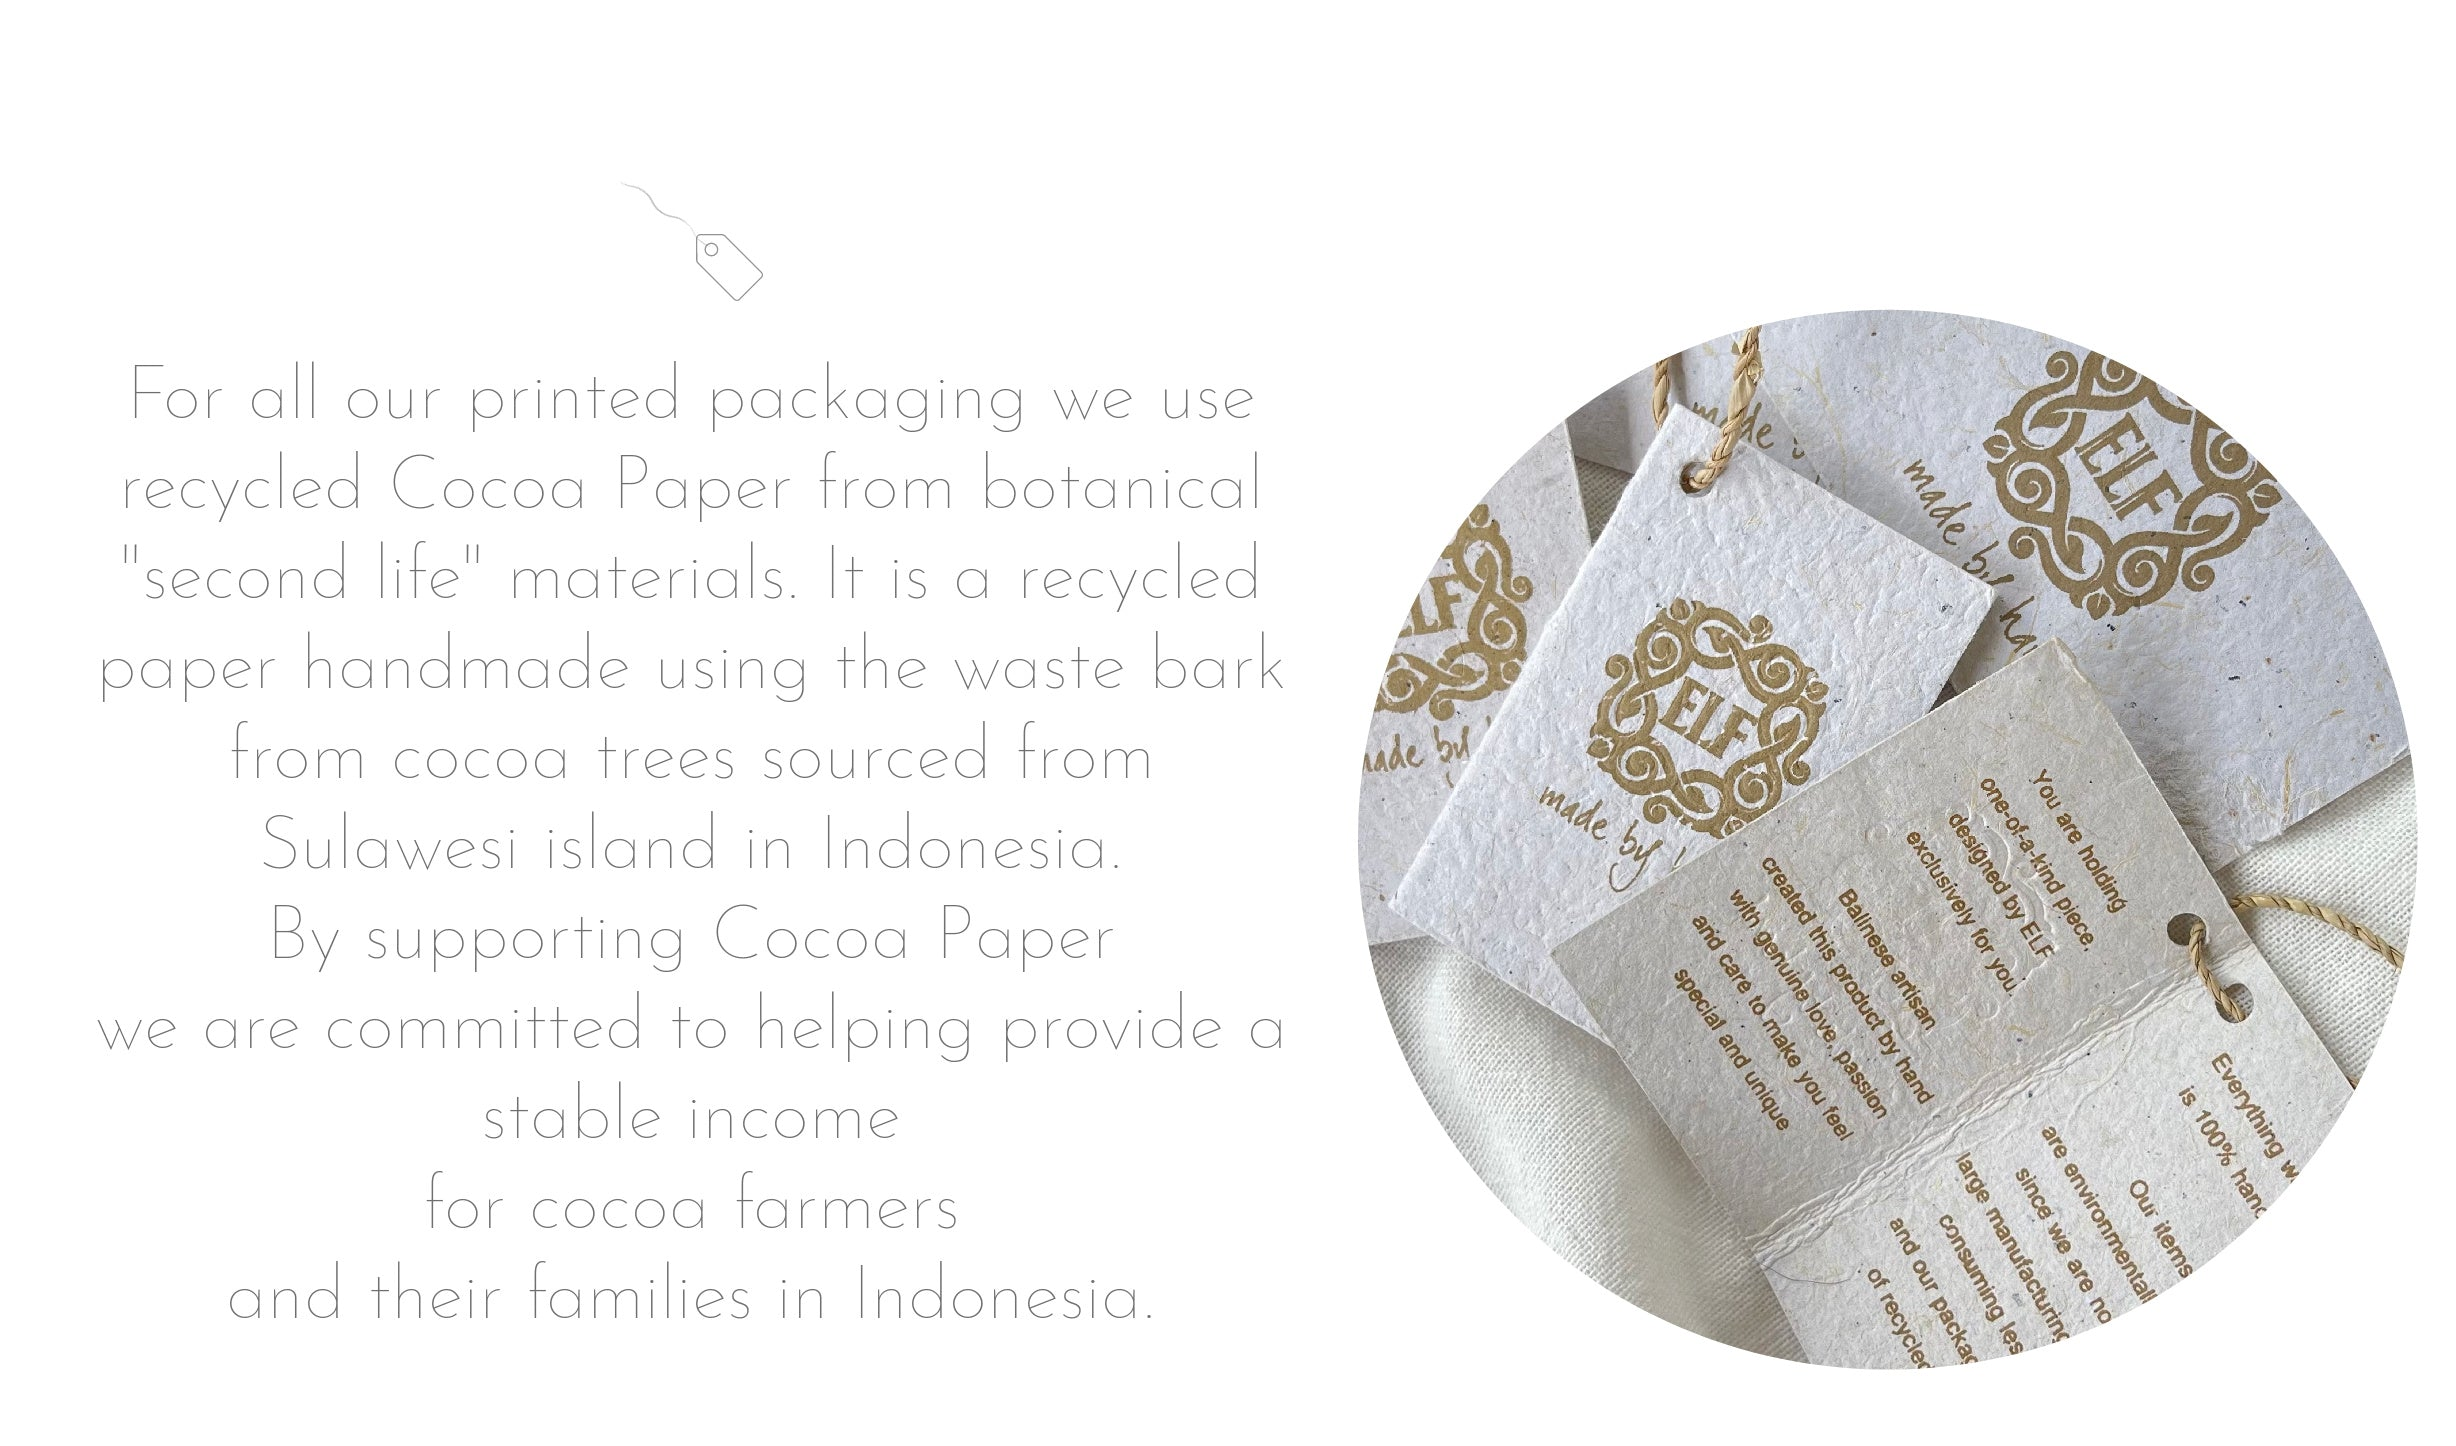 """For all our printed packaging we use recycled Cocoa Paper from botanical """"second life"""" materials. It is a recycled paper handmade using the waste bark from cocoa trees sourced from Sulawesi island in Indonesia. By supporting Cocoa Paper we are committed to helping provide a stable income for cocoa farmers and their families in Indonesia."""